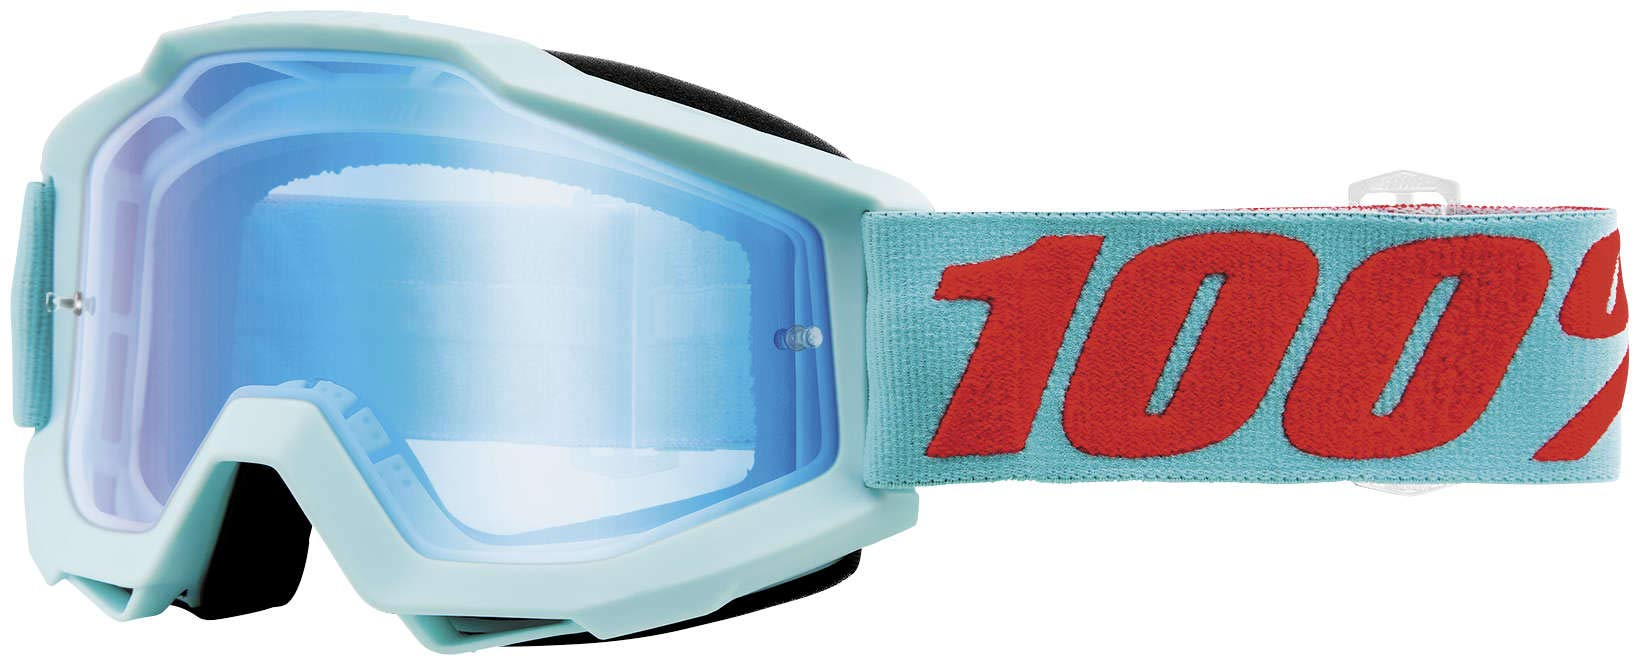 100% Accuri Goggles - Mirrored Lens (MALDIVES/BLUE FLASH LENS)